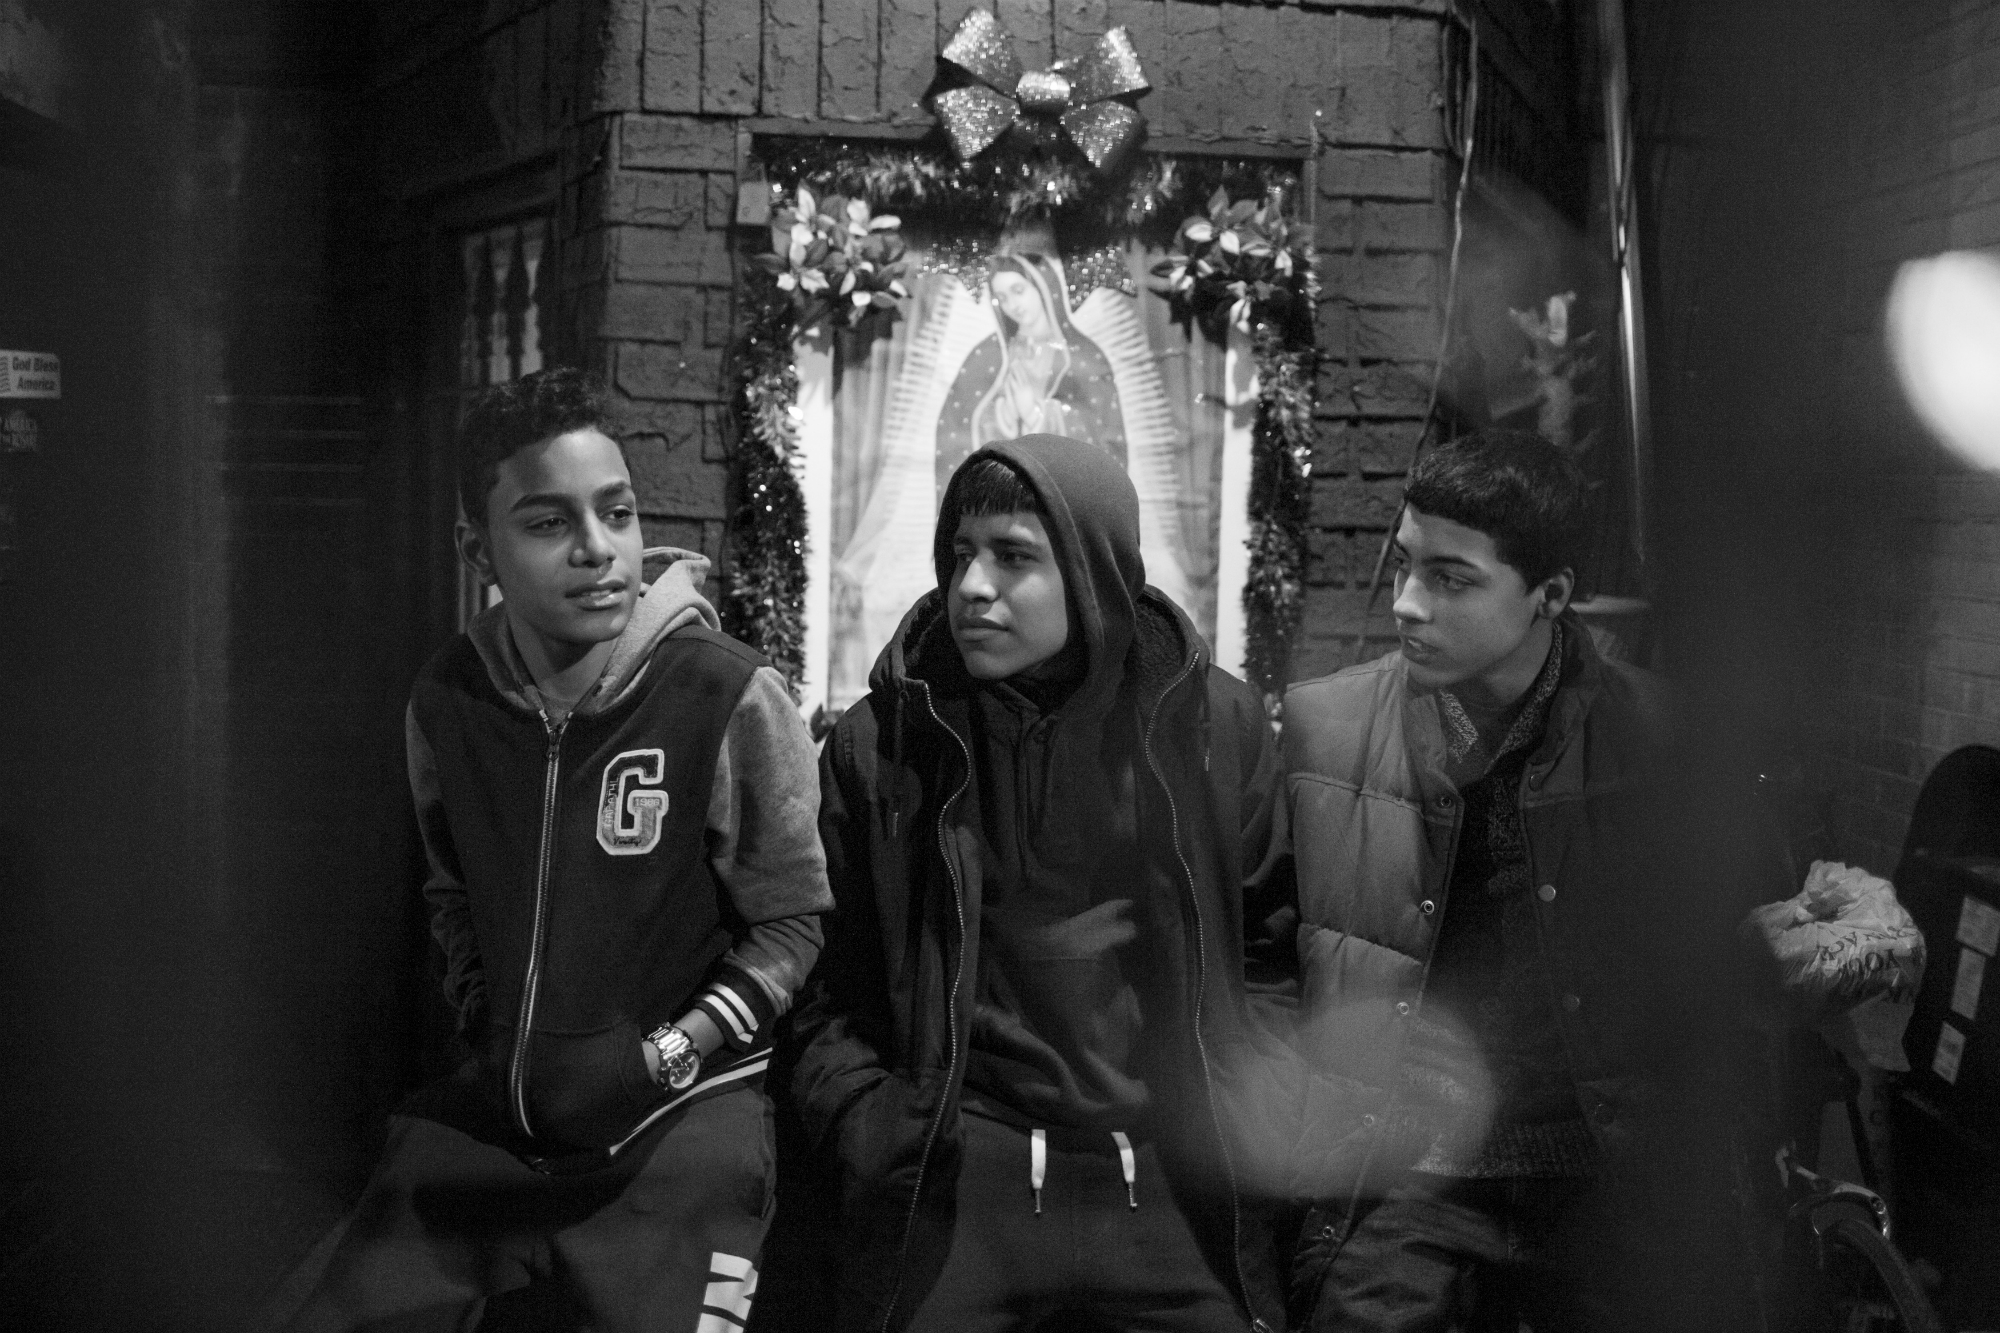 Chavi Leon, Marco Vasquez and Edwin Amaro sit outside of Marco's apartment in Mott Haven, February 26, 2016, South Bronx, New York. (Photo by Sarah Blesener/GroundTruth/Alexia Foundation)